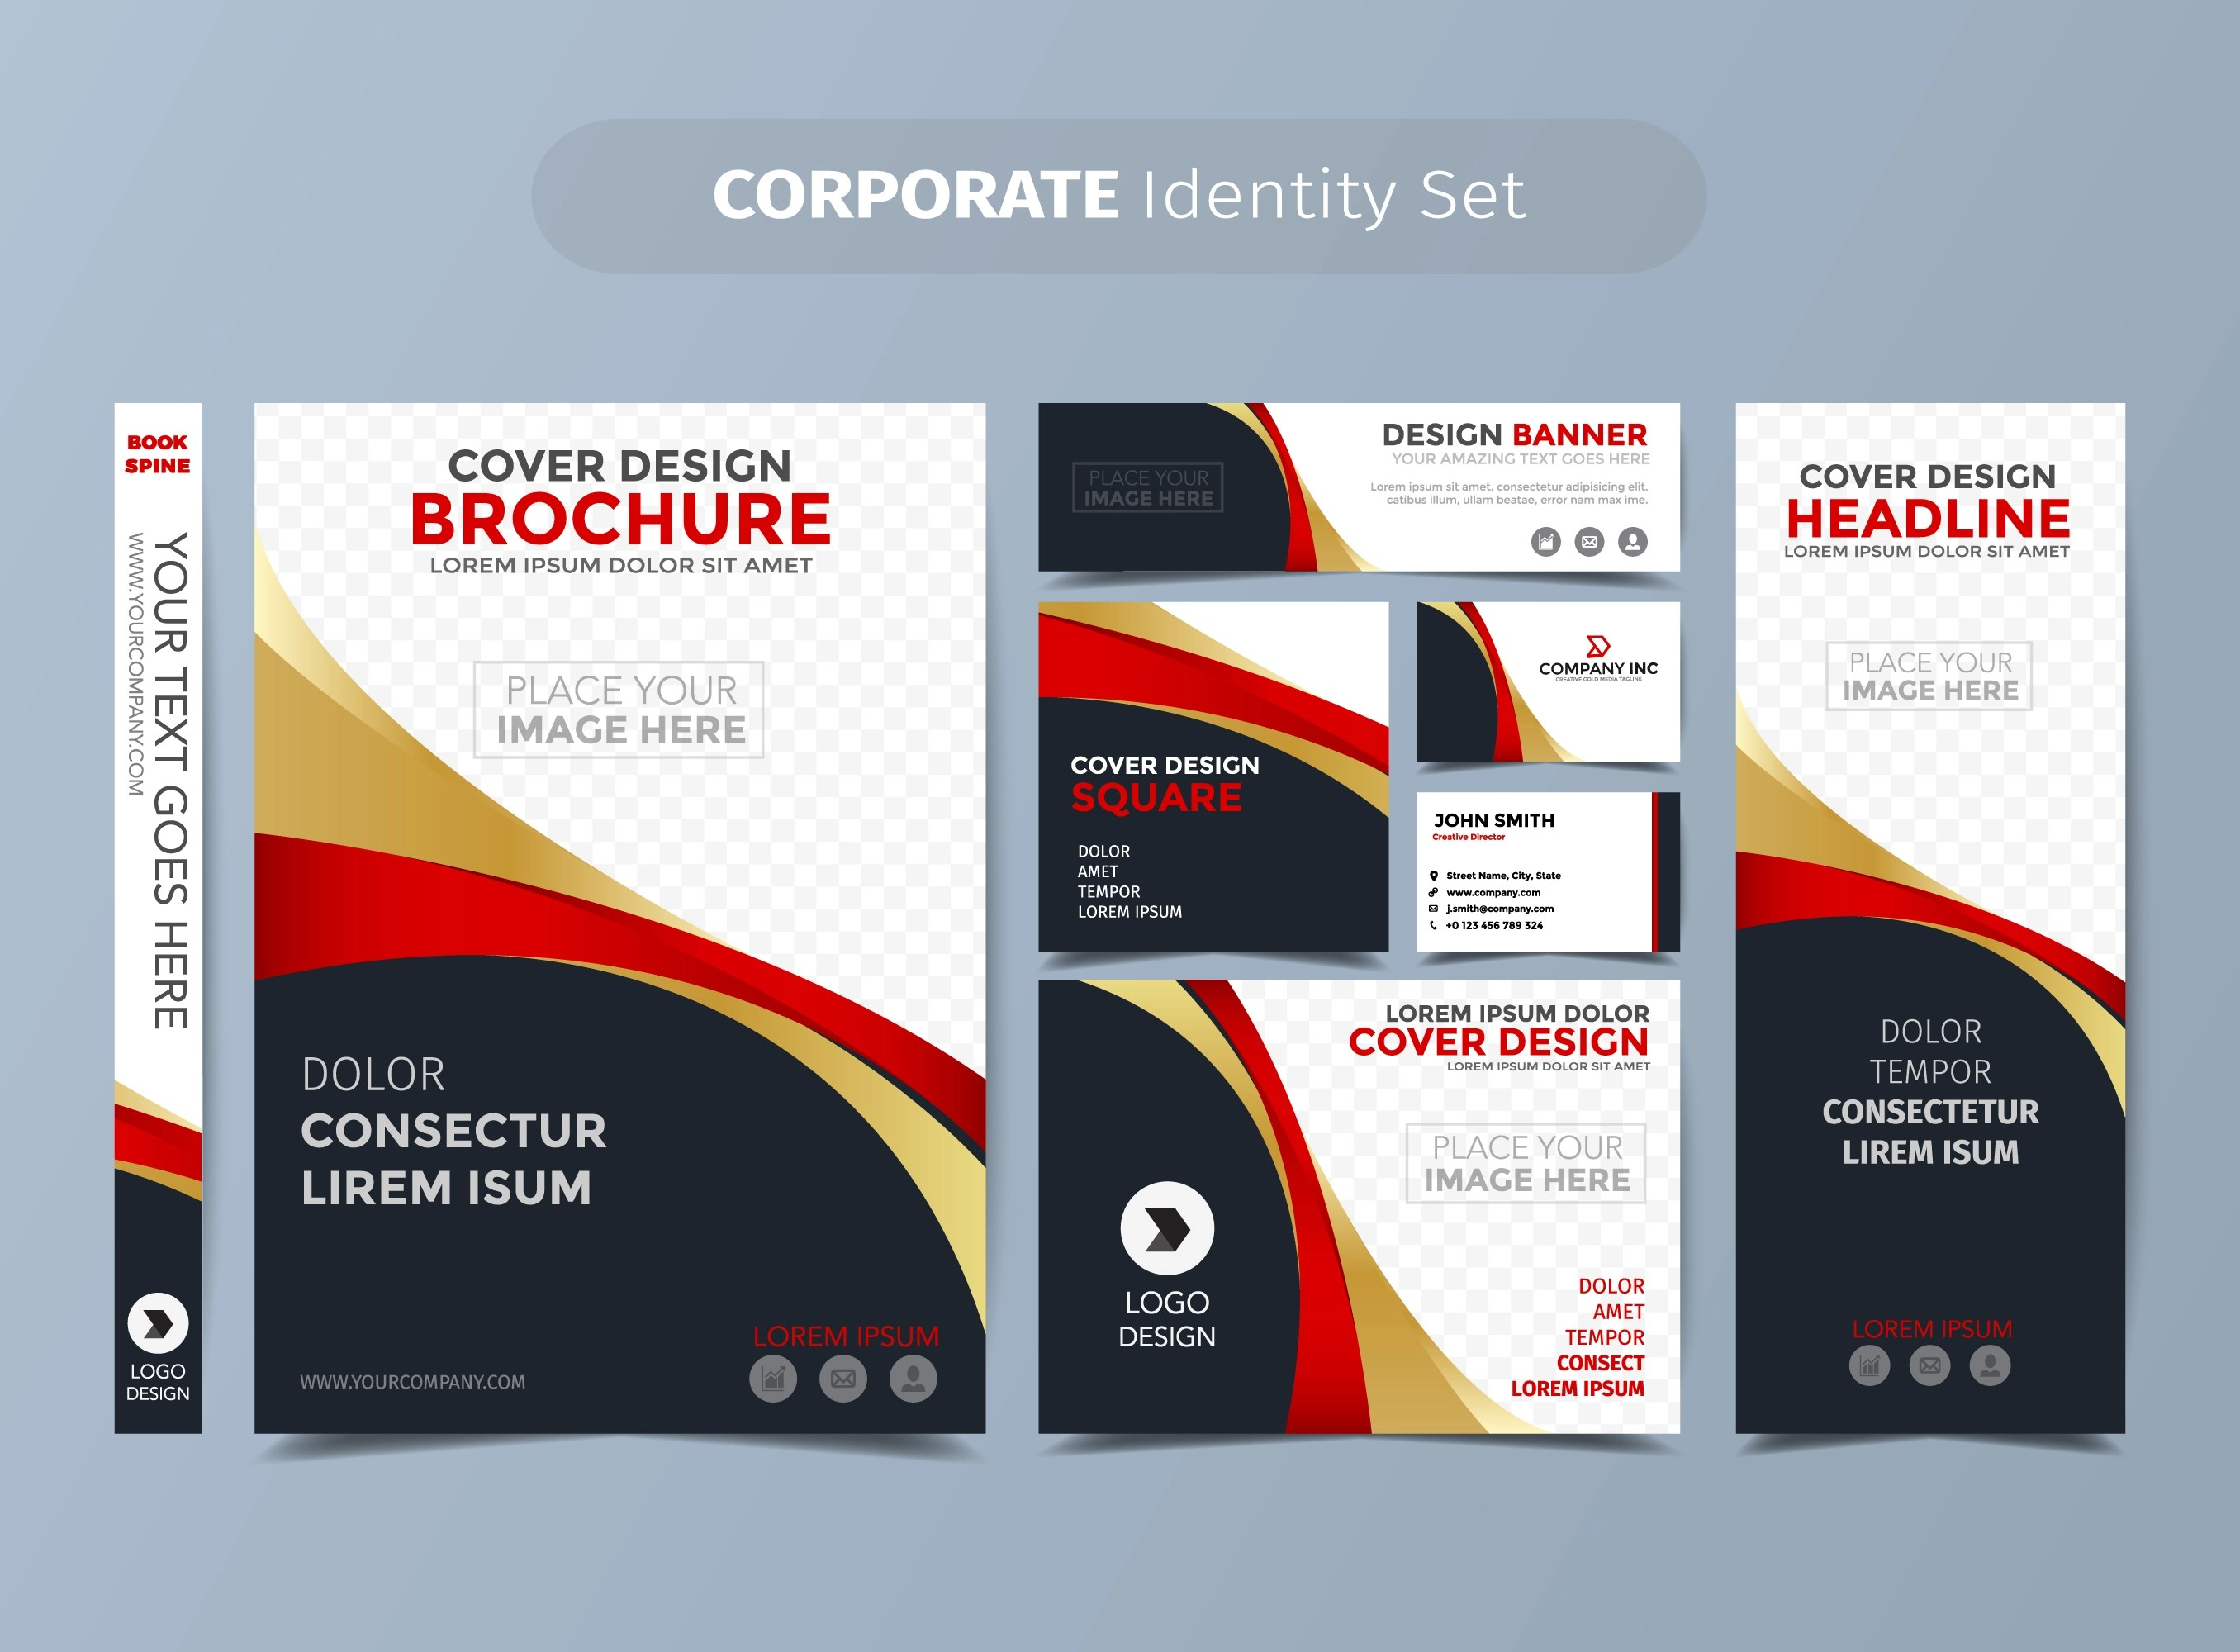 Corporate Graphic Design Gold And Red Corporate Identity Set Download Free Vector Art